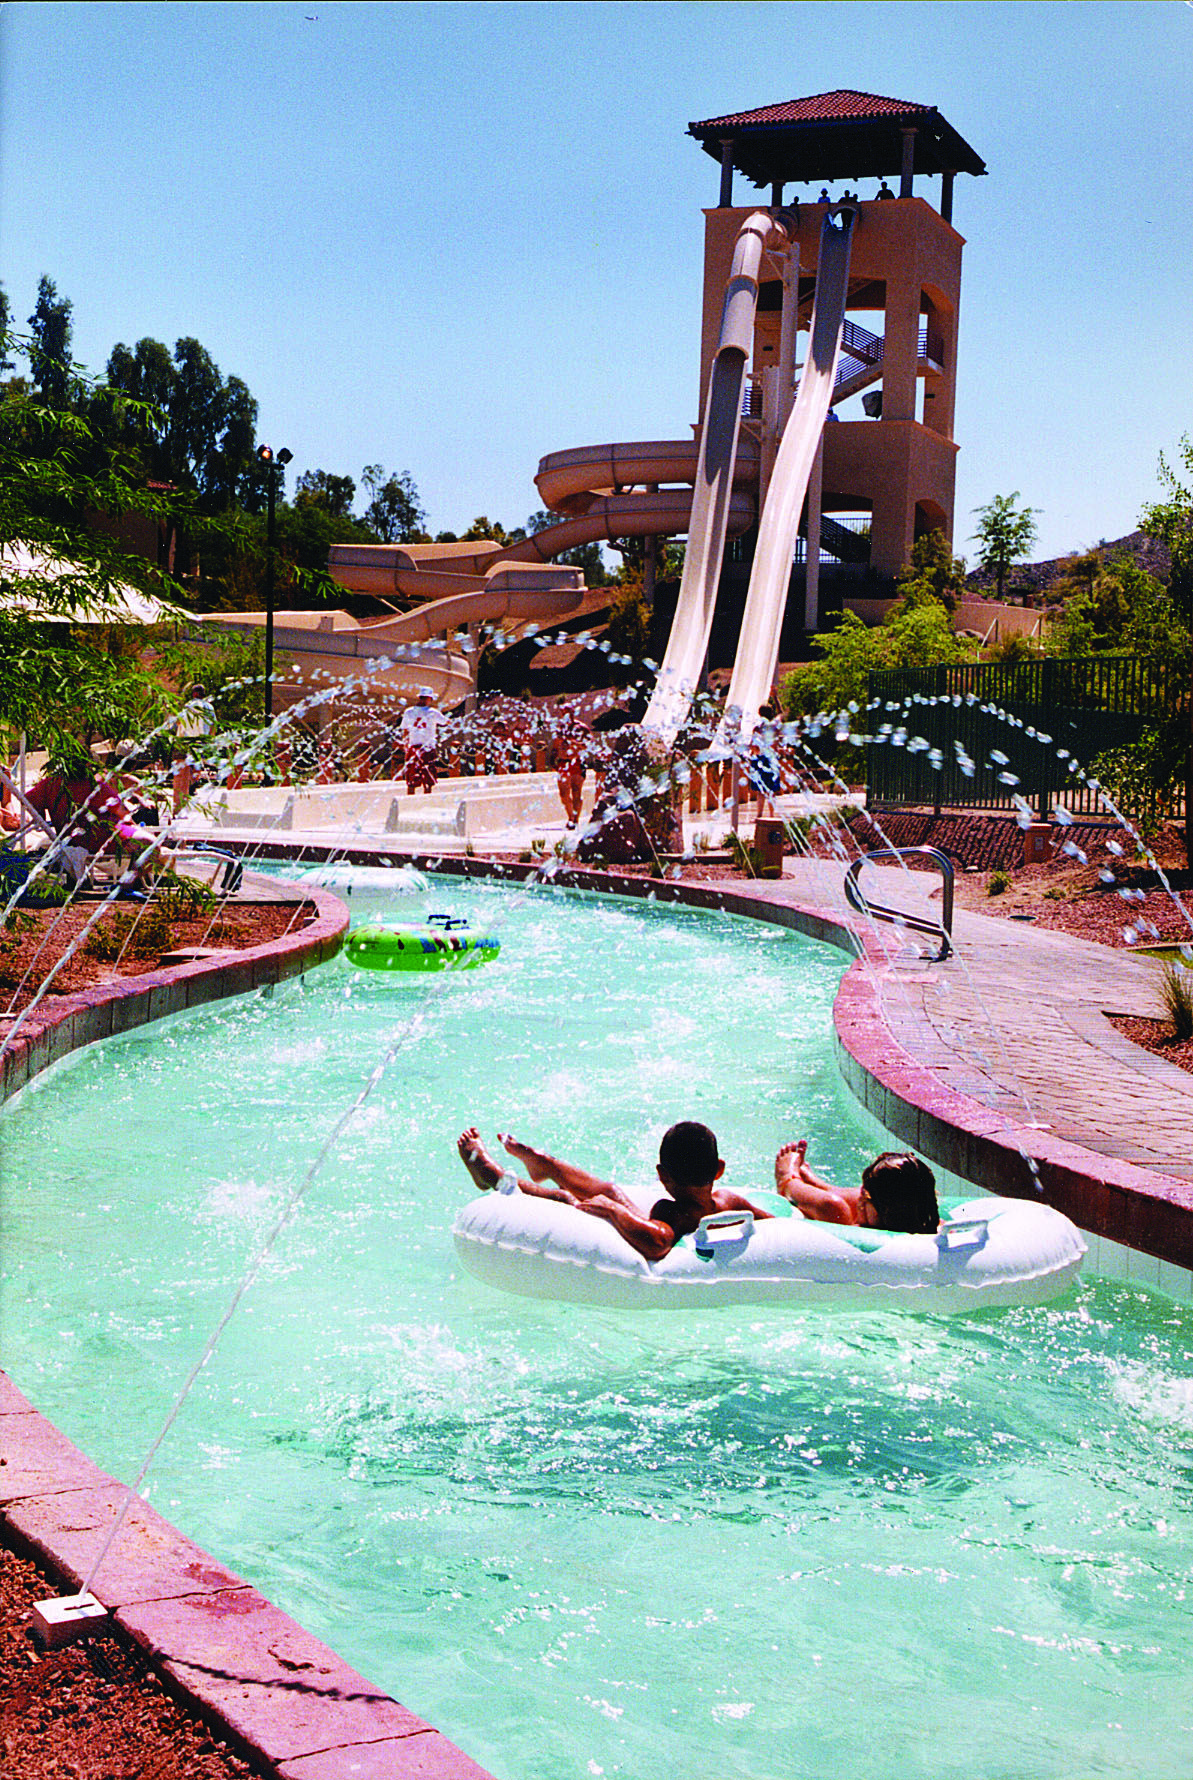 Escape The Heat At These Phoenix Area Resorts With Water Parks Scottsdale And